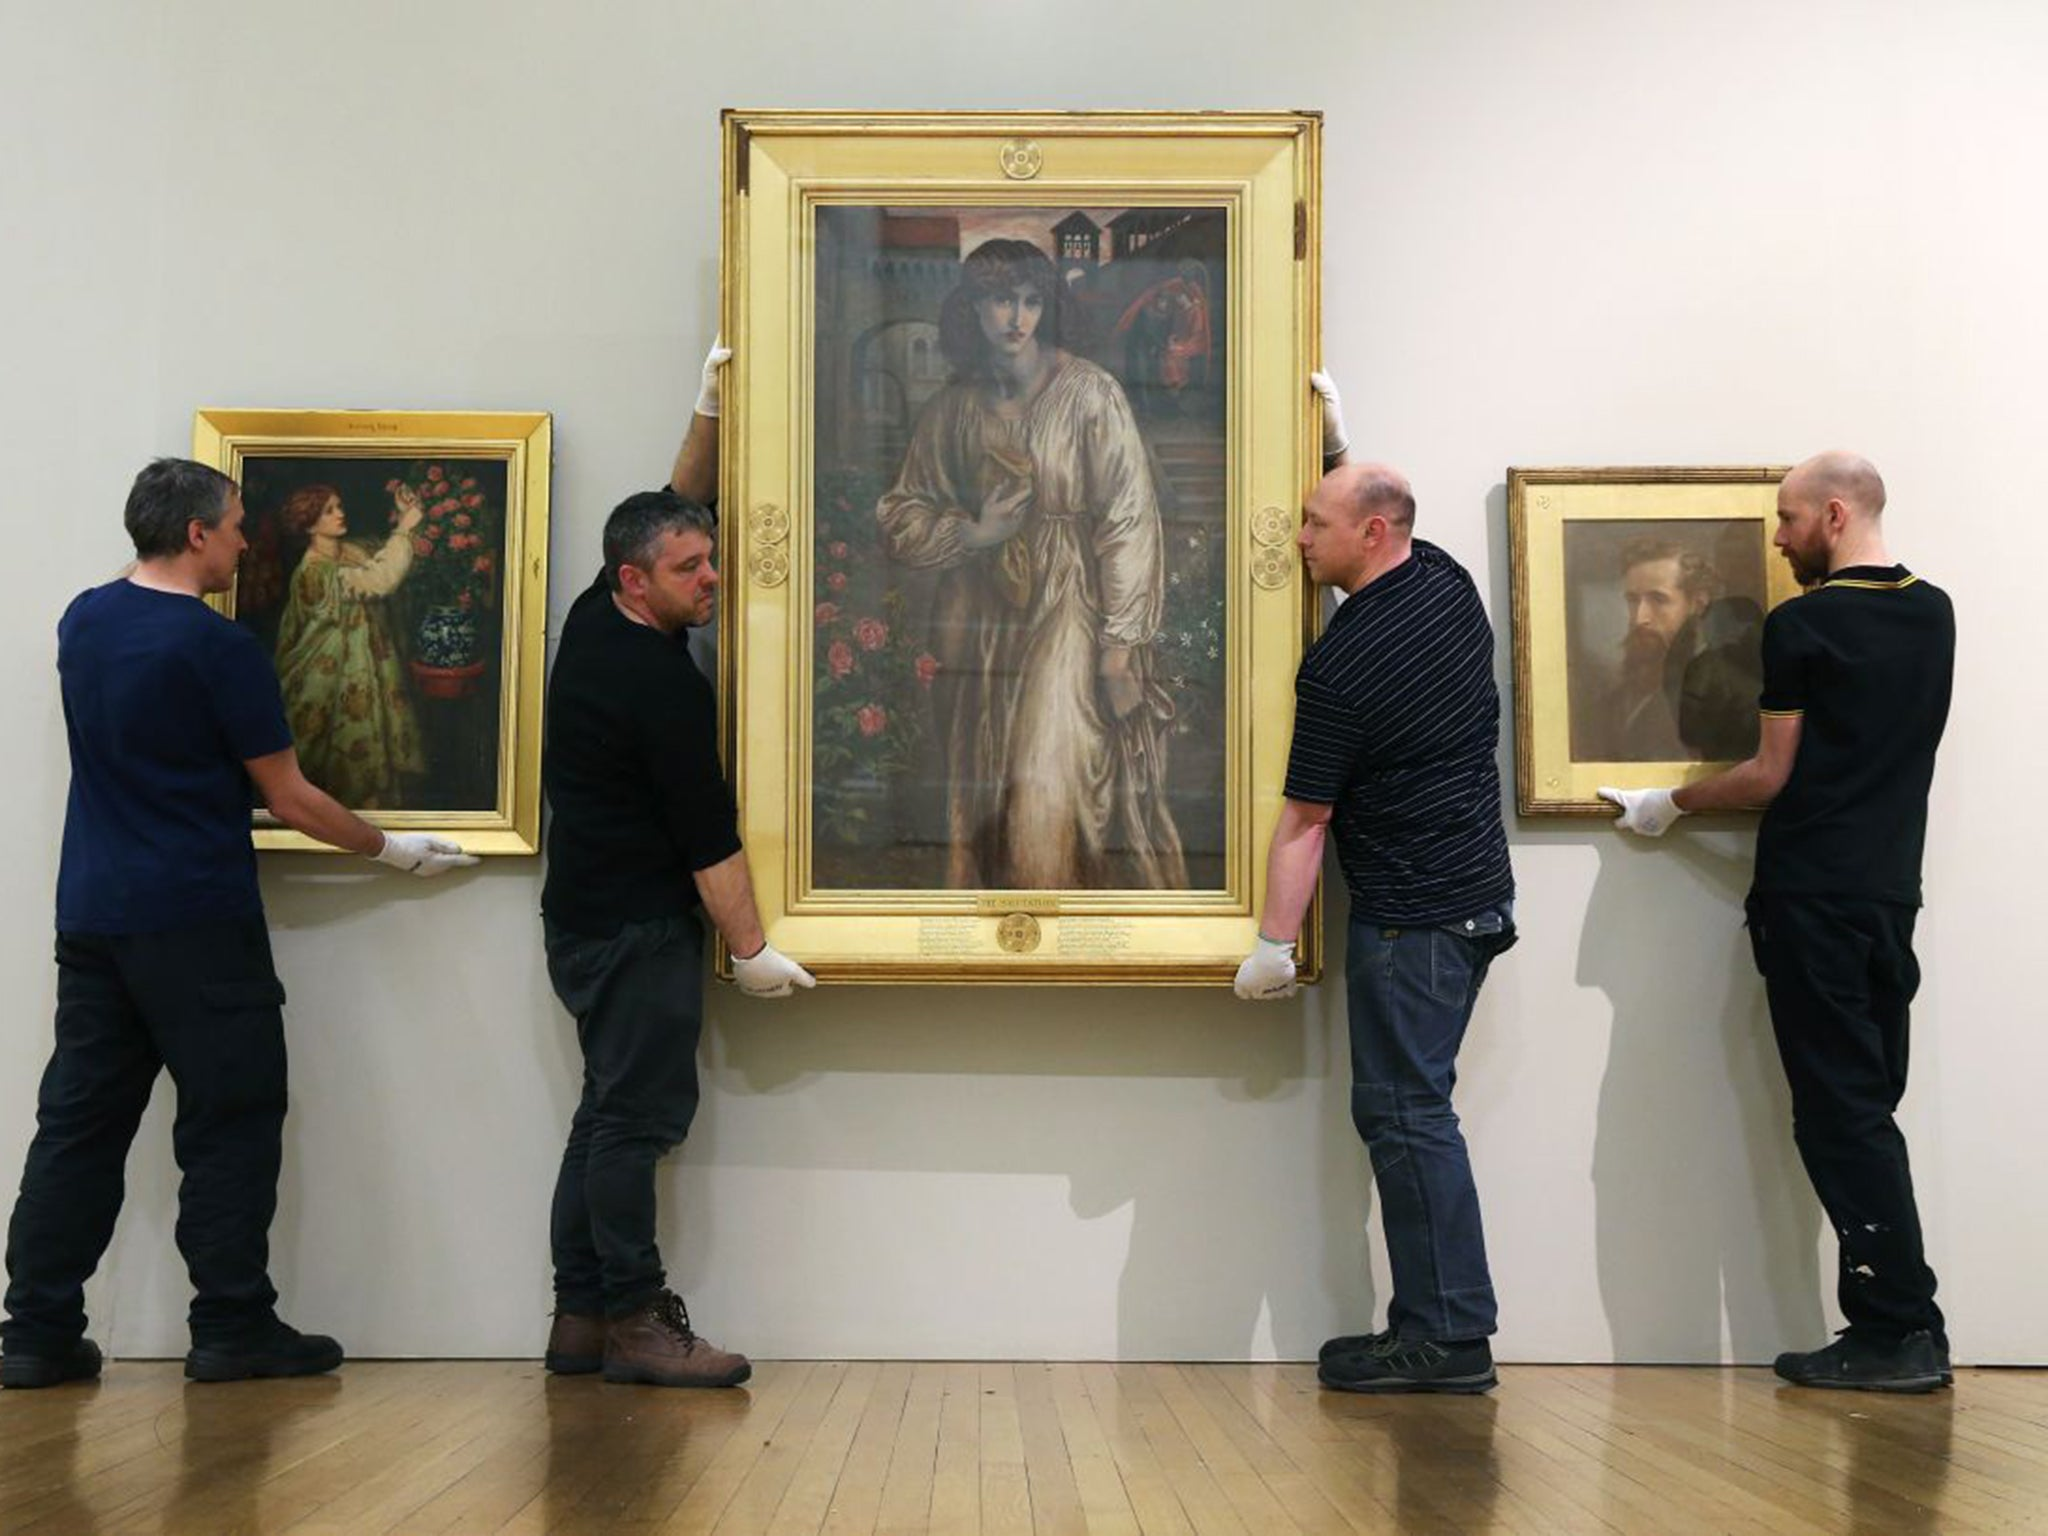 Dante Gabriel Rossetti's hidden copy has been unveiled, 135 years on http://buff.ly/20CJzeL